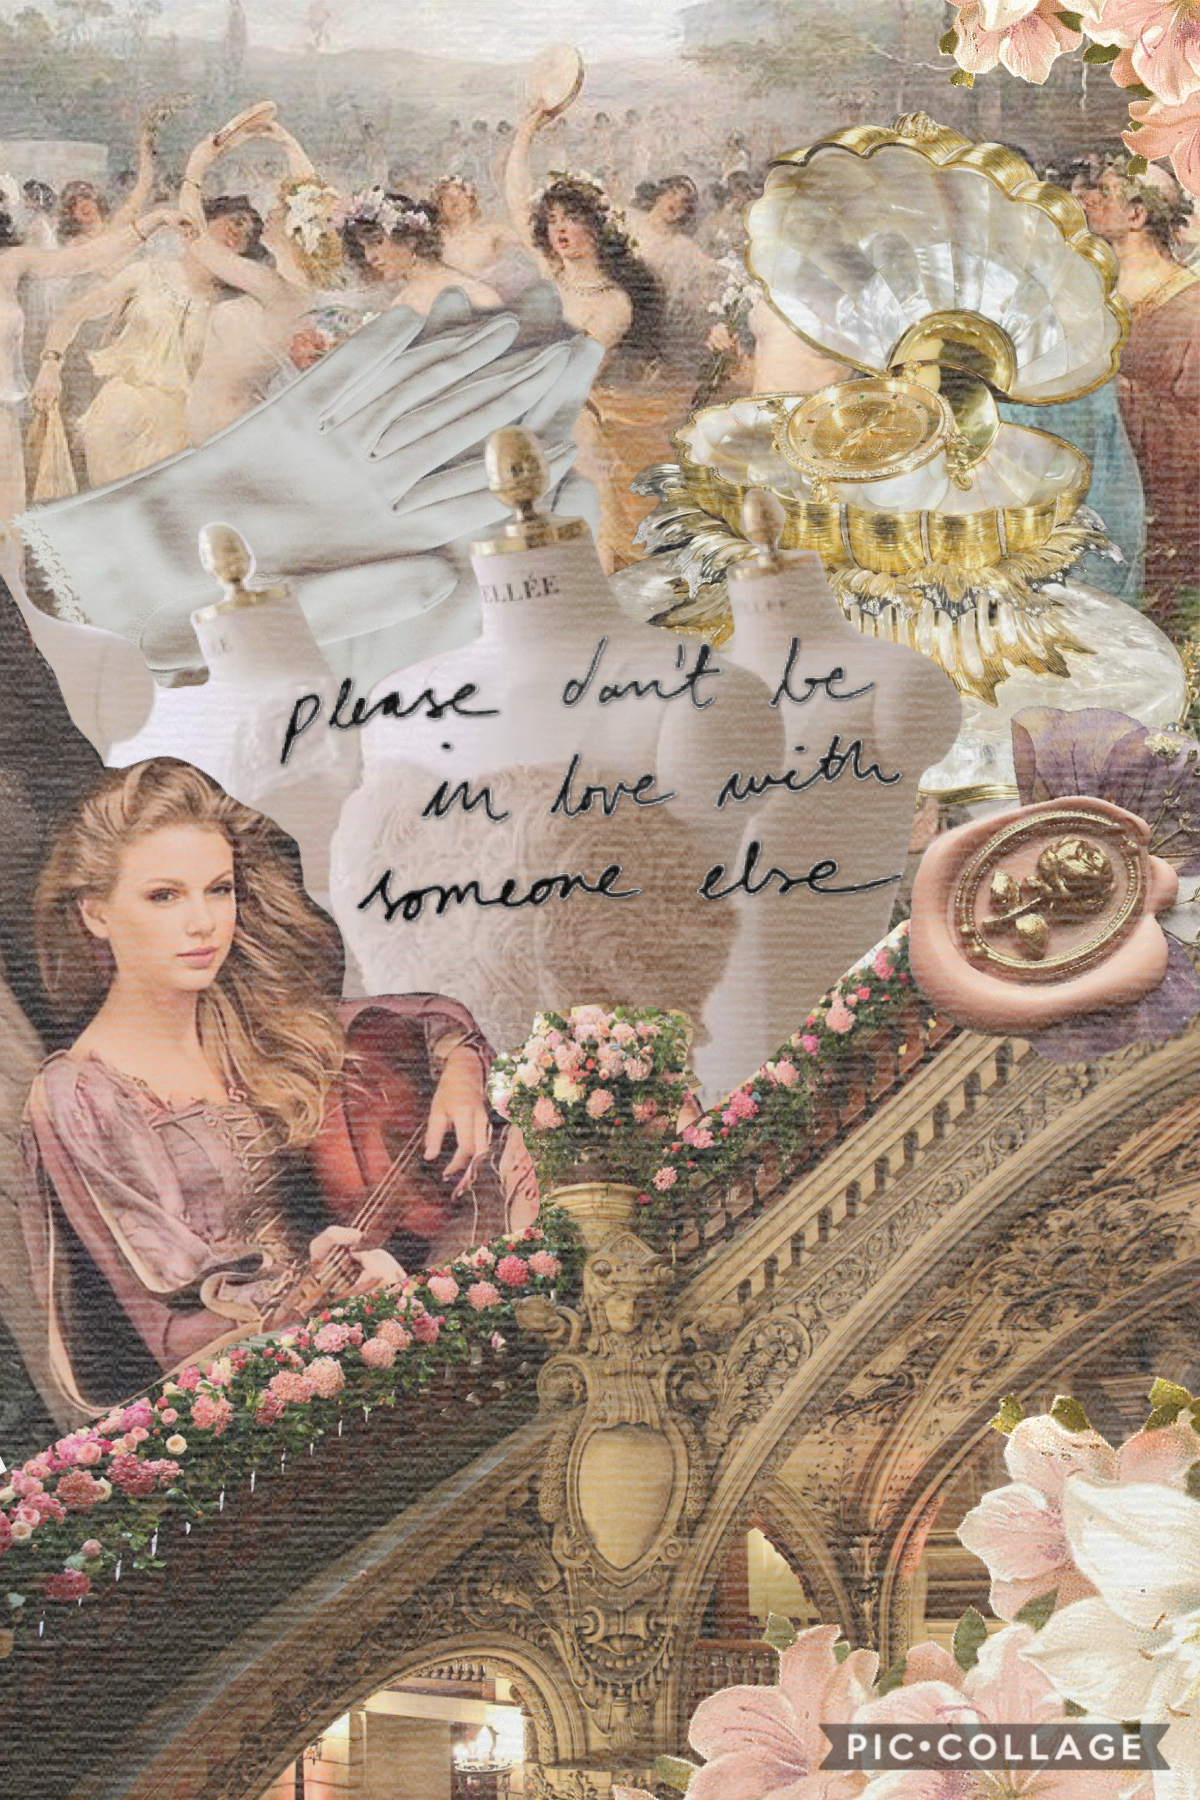 🦋 inspired by the song enchanted by the swiftest taylor in existence 🦋  sorry guys im so inactive on here 😞 i only make collages when creativity & motivation strikes so i have no consistency whatsoever🤷🏻♀️ pls still like me:(  have an enchanting dayyyy💖